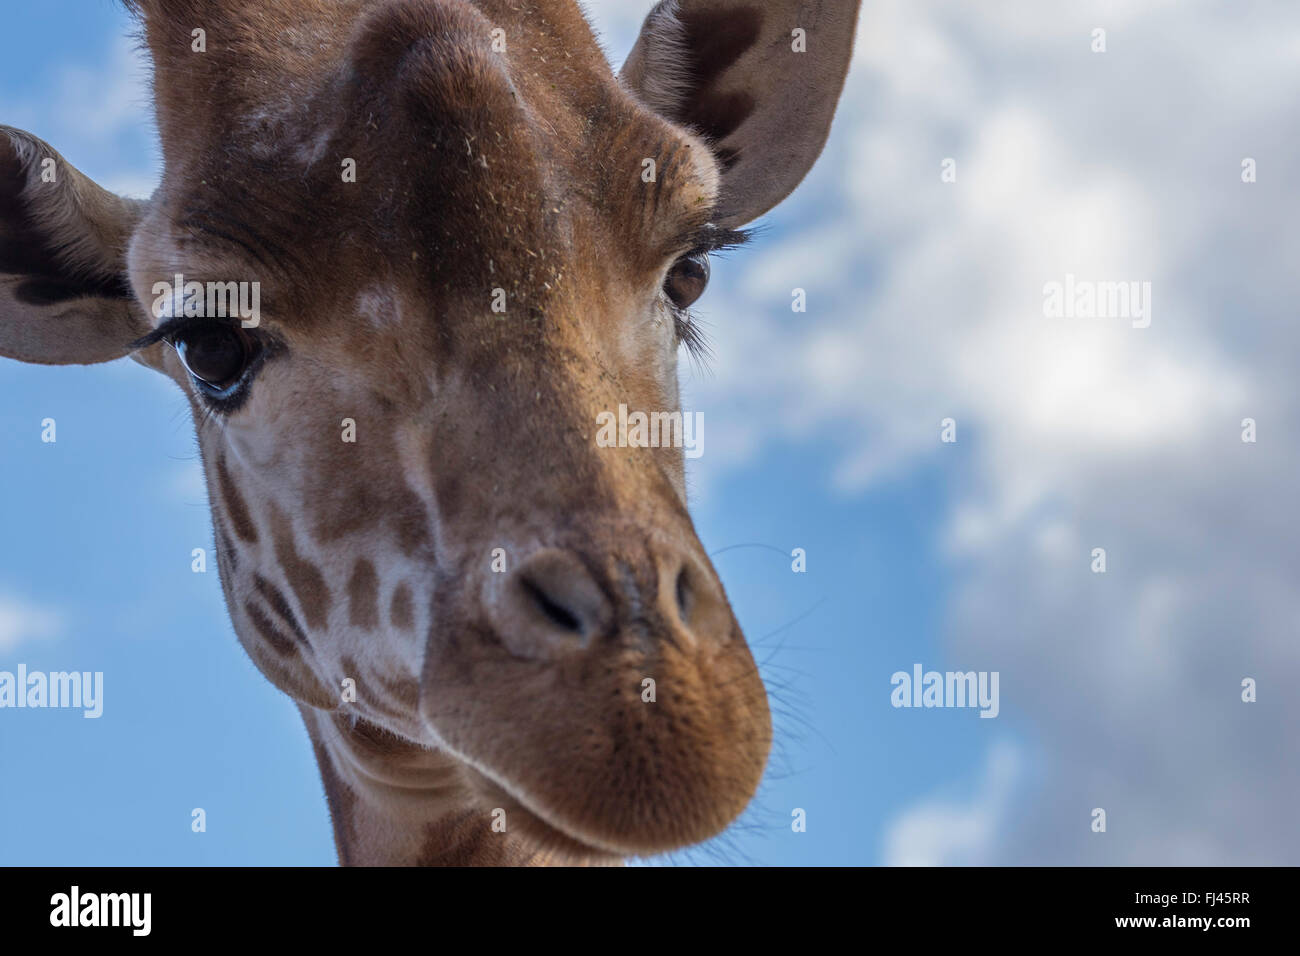 Une belle girafe de près Photo Stock